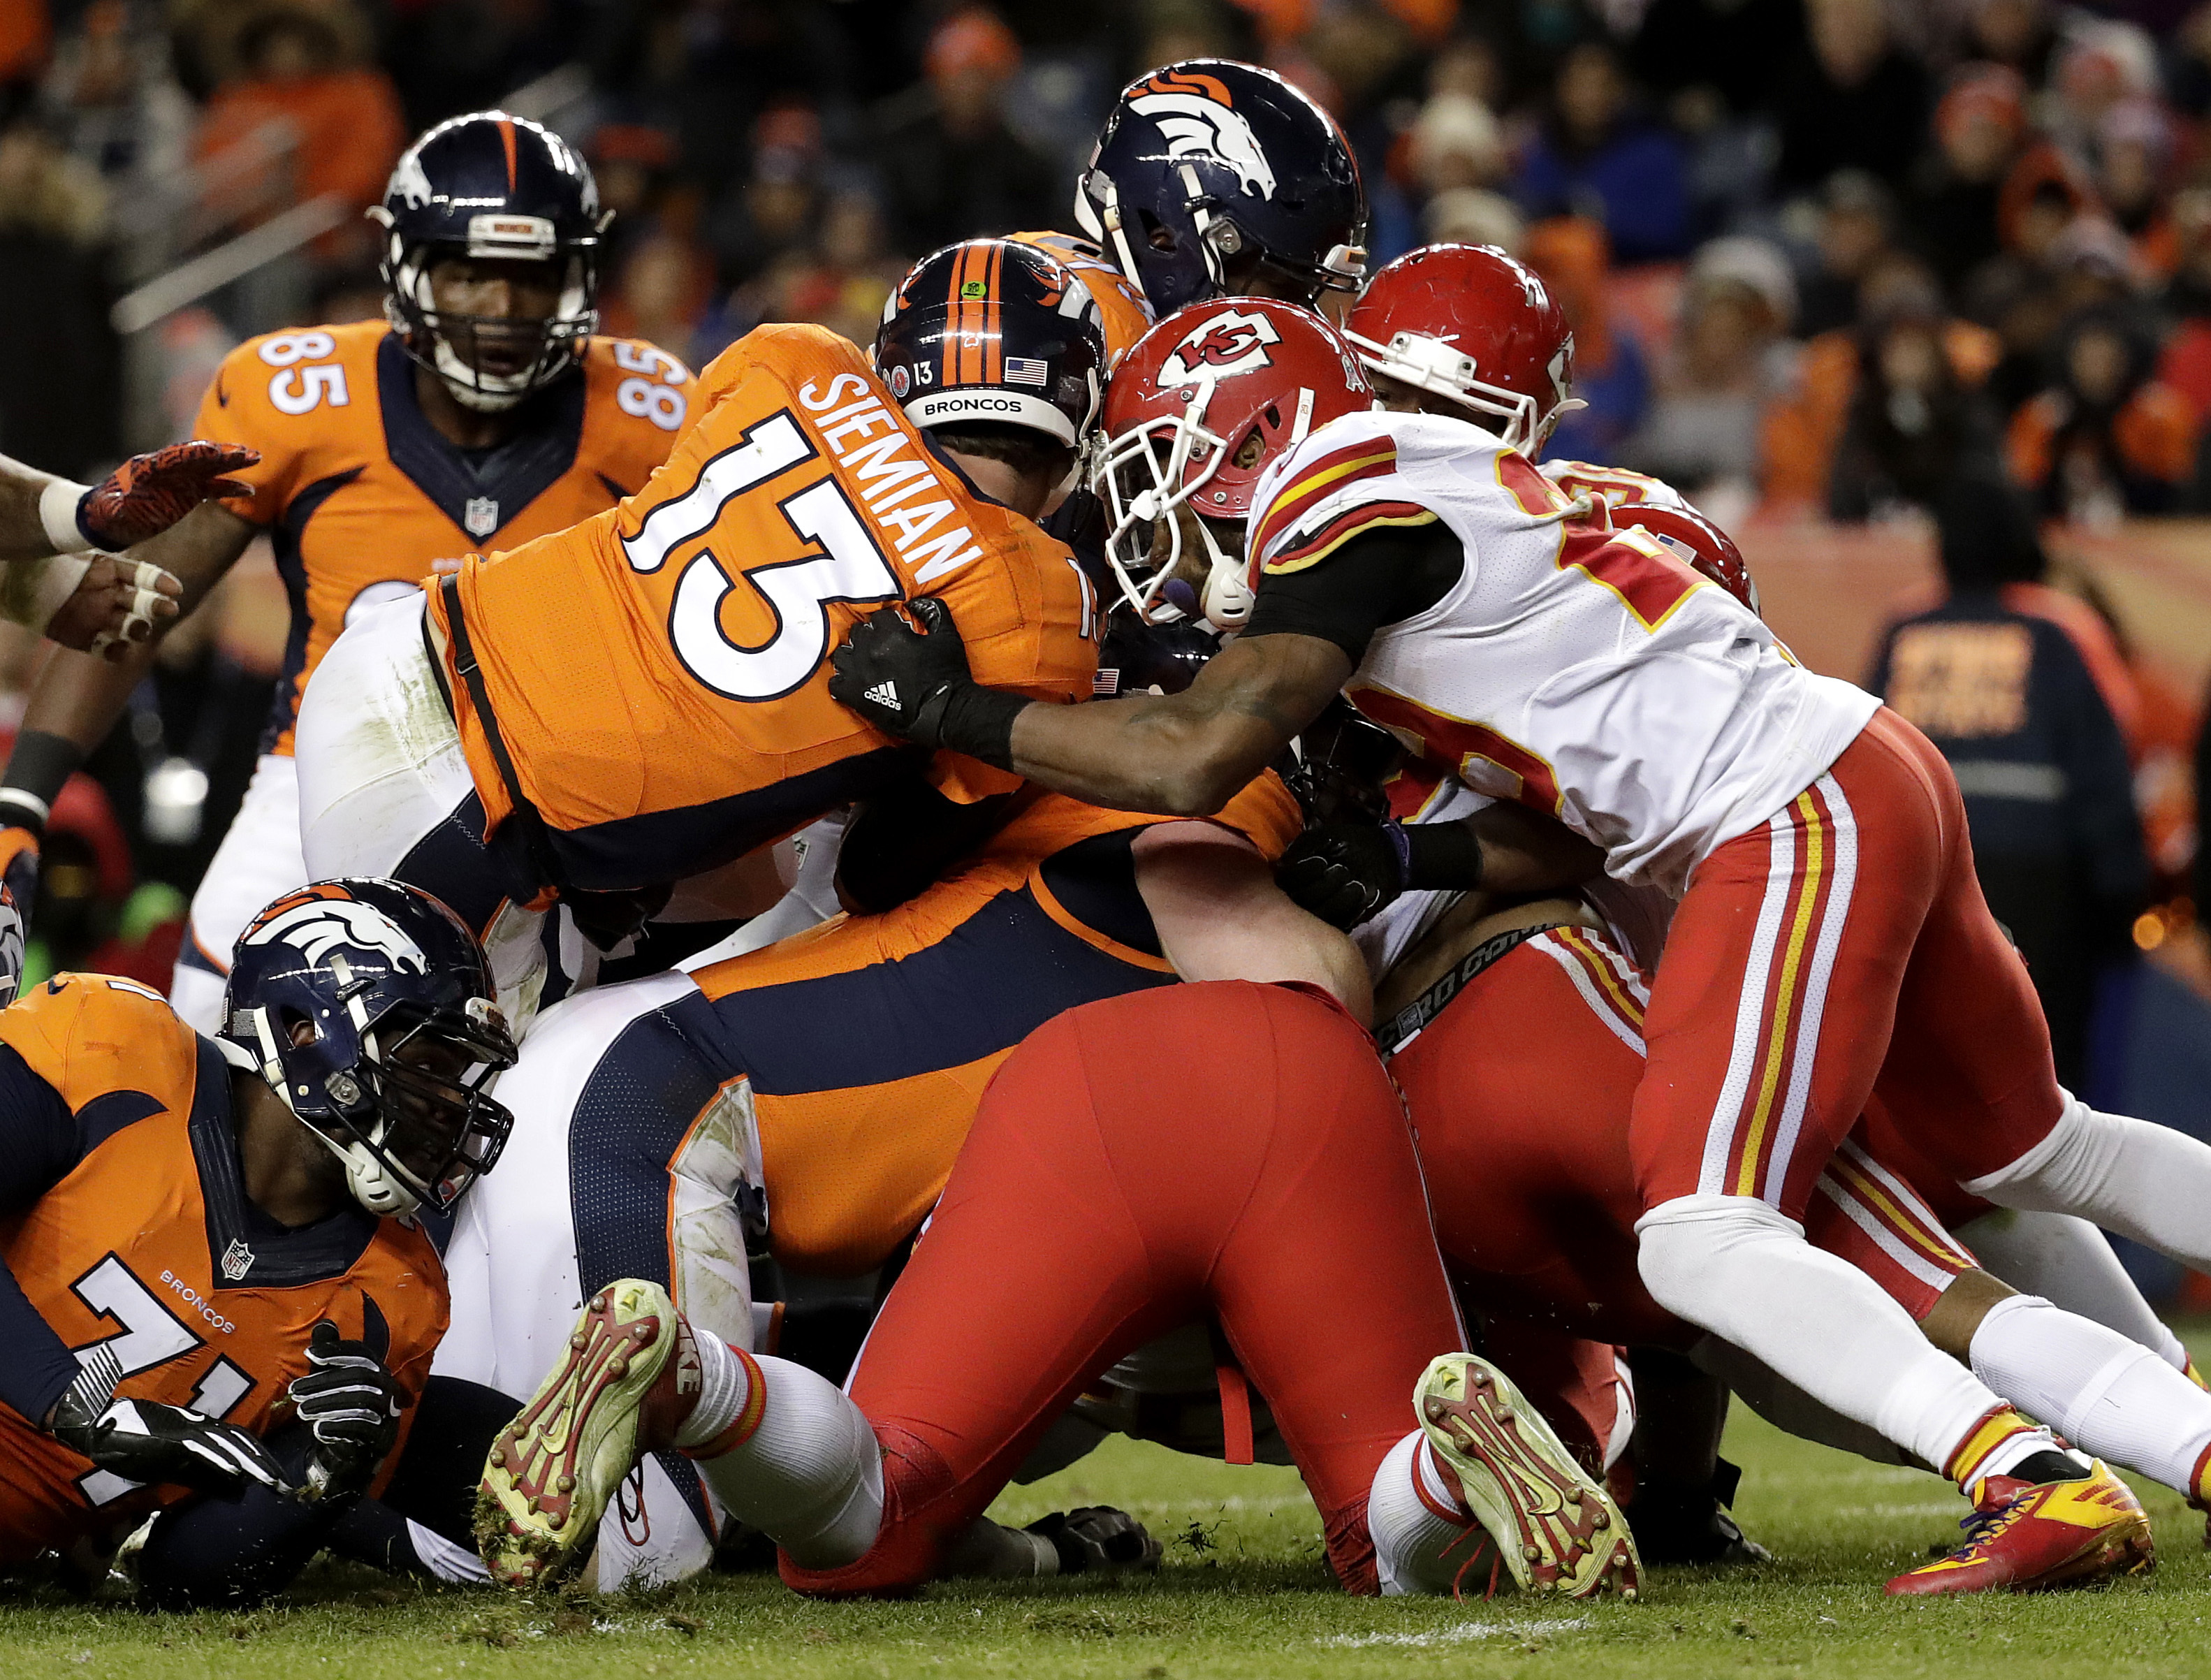 Denver Broncos quarterback Trevor Siemian (13) gets the first down on fourth and one as Kansas City Chiefs strong safety Eric Berry blocks during the second half of an NFL football game, Sunday, Nov. 27, 2016, in Denver. (AP Photo/Jack Dempsey)